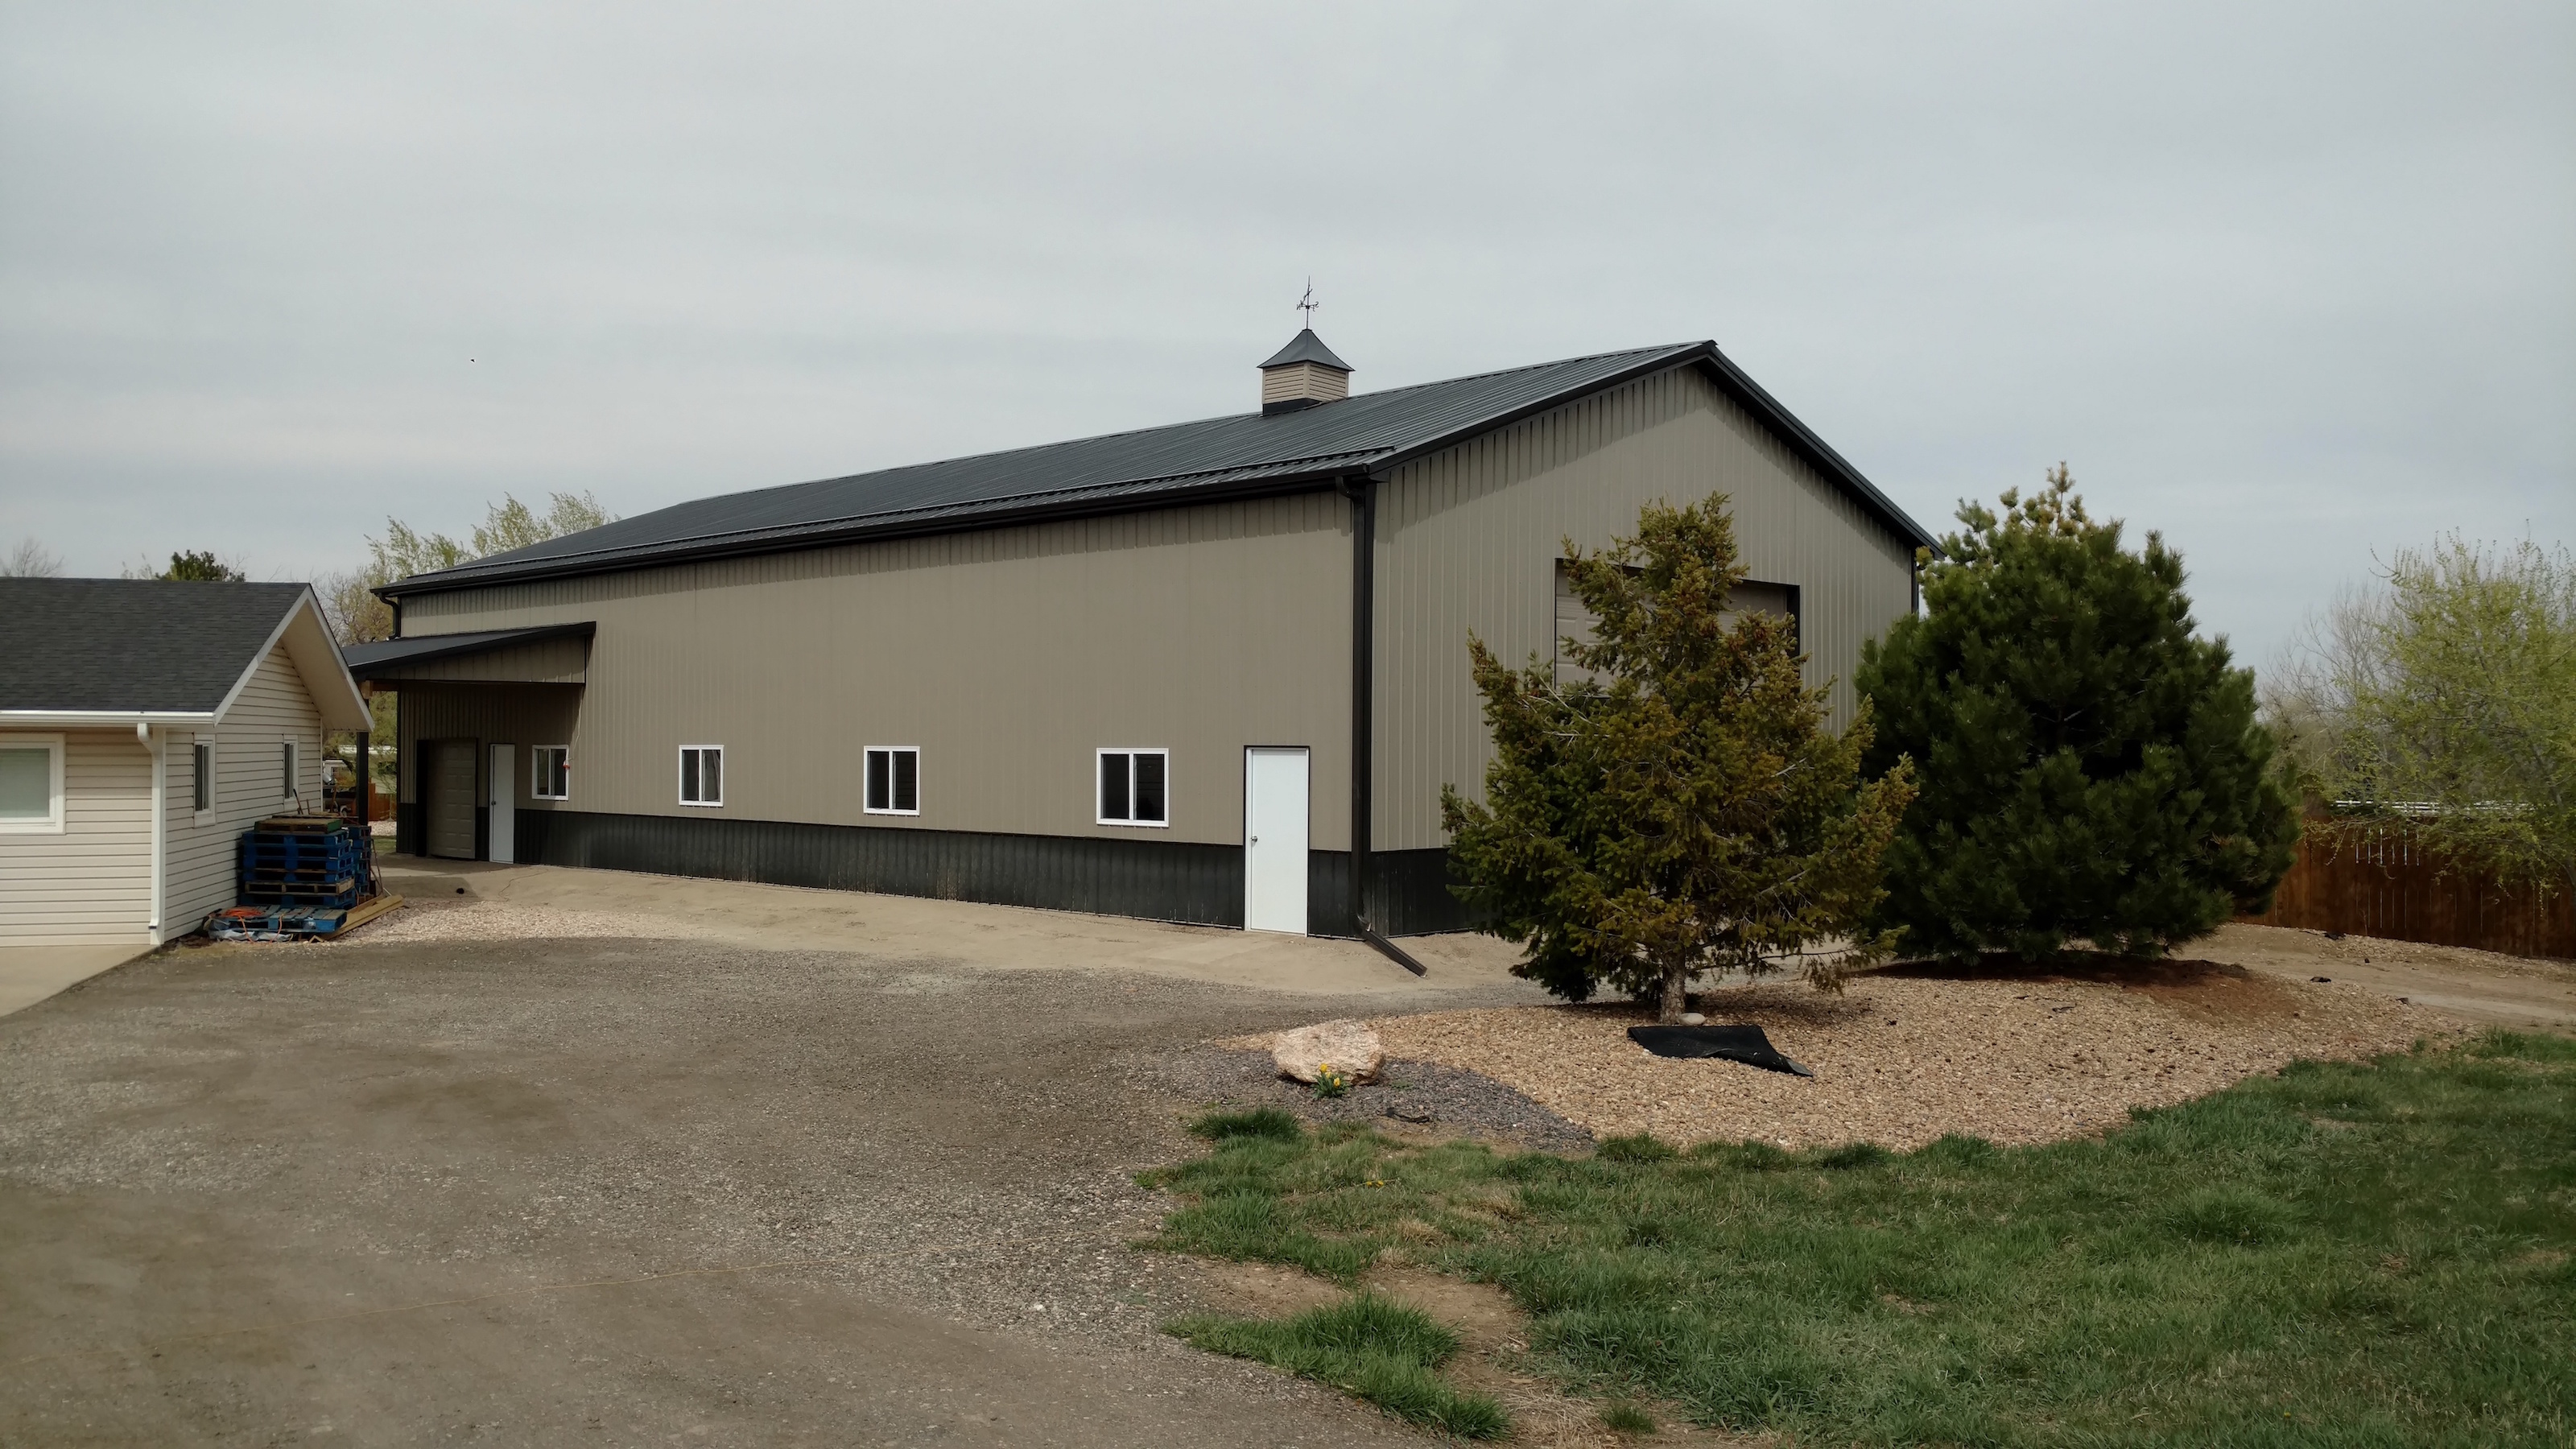 llc structures builders barn deloof beam d home post pole series barns buildings